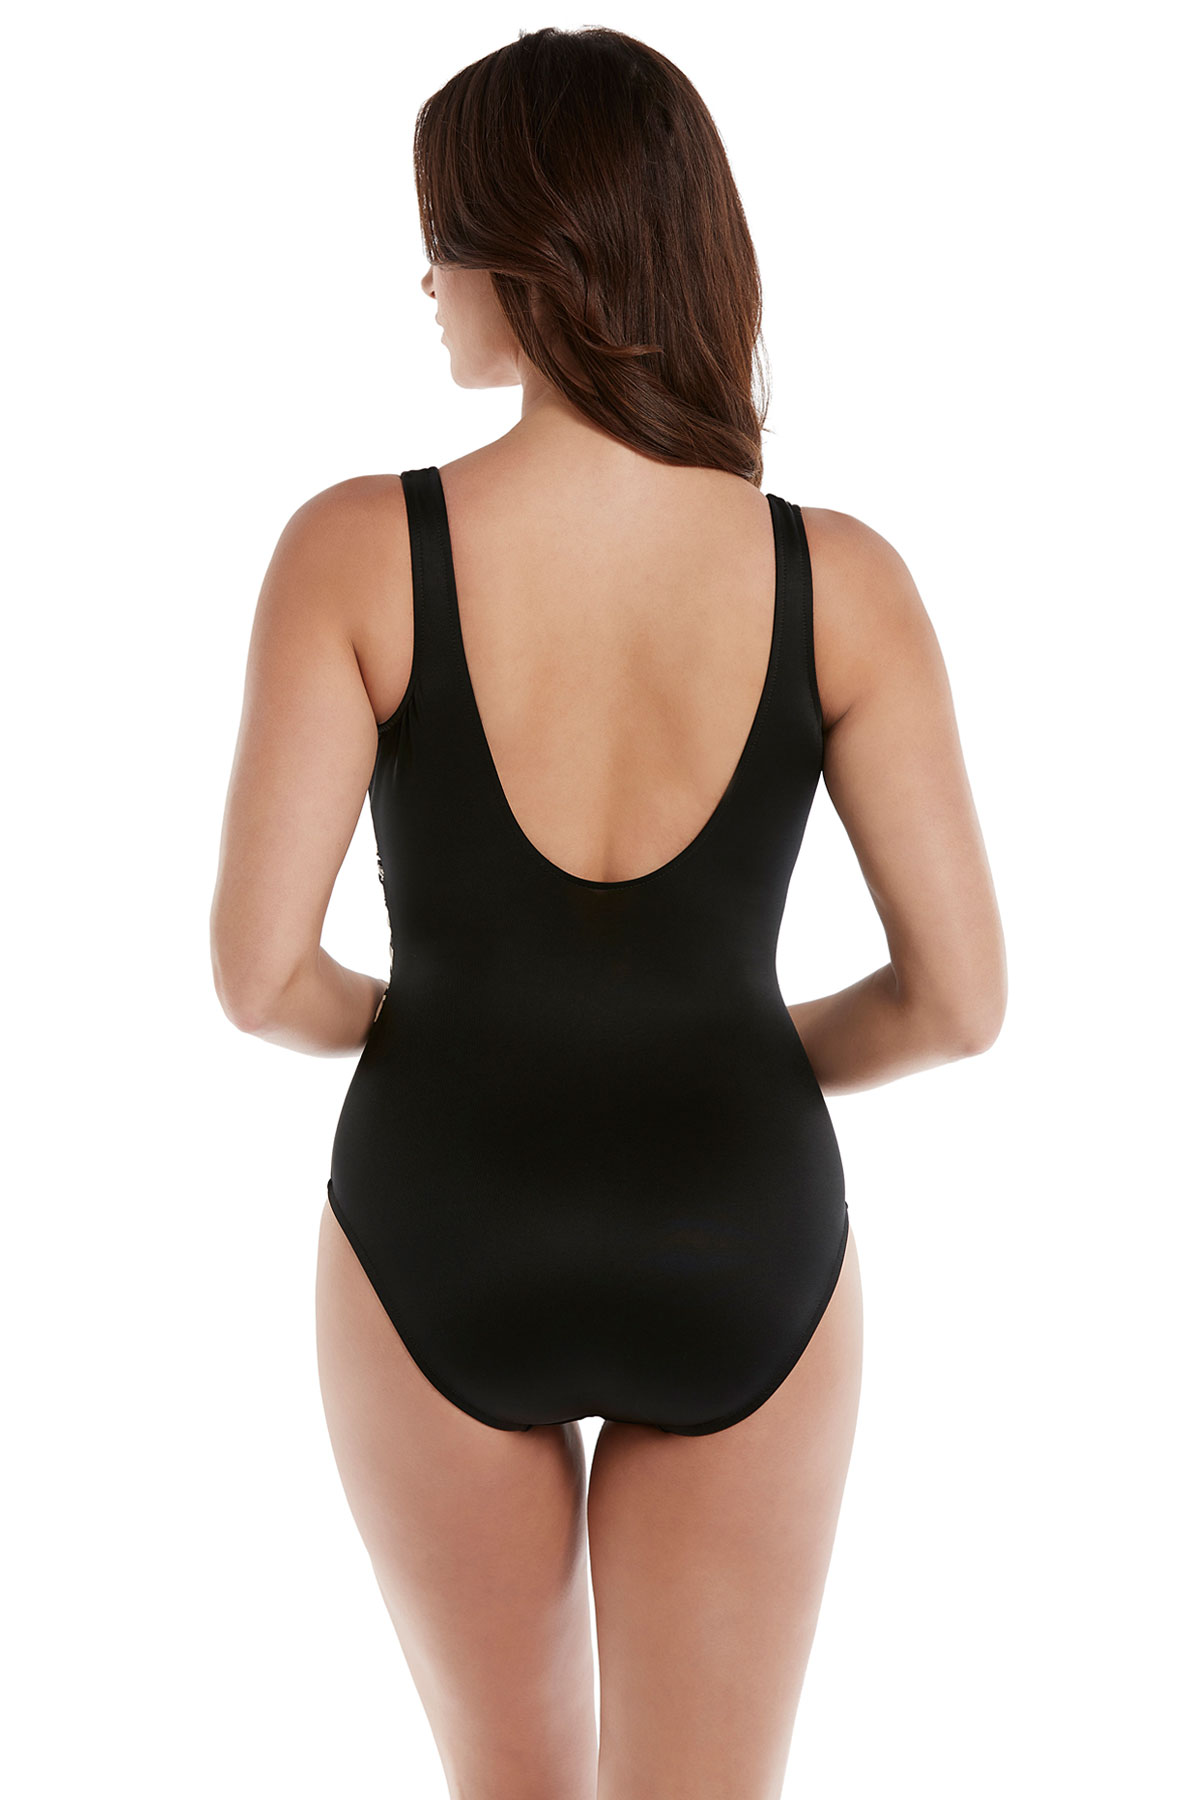 Elan Plunge Over The Shoulder One Piece Swimsuit - Black/White 2